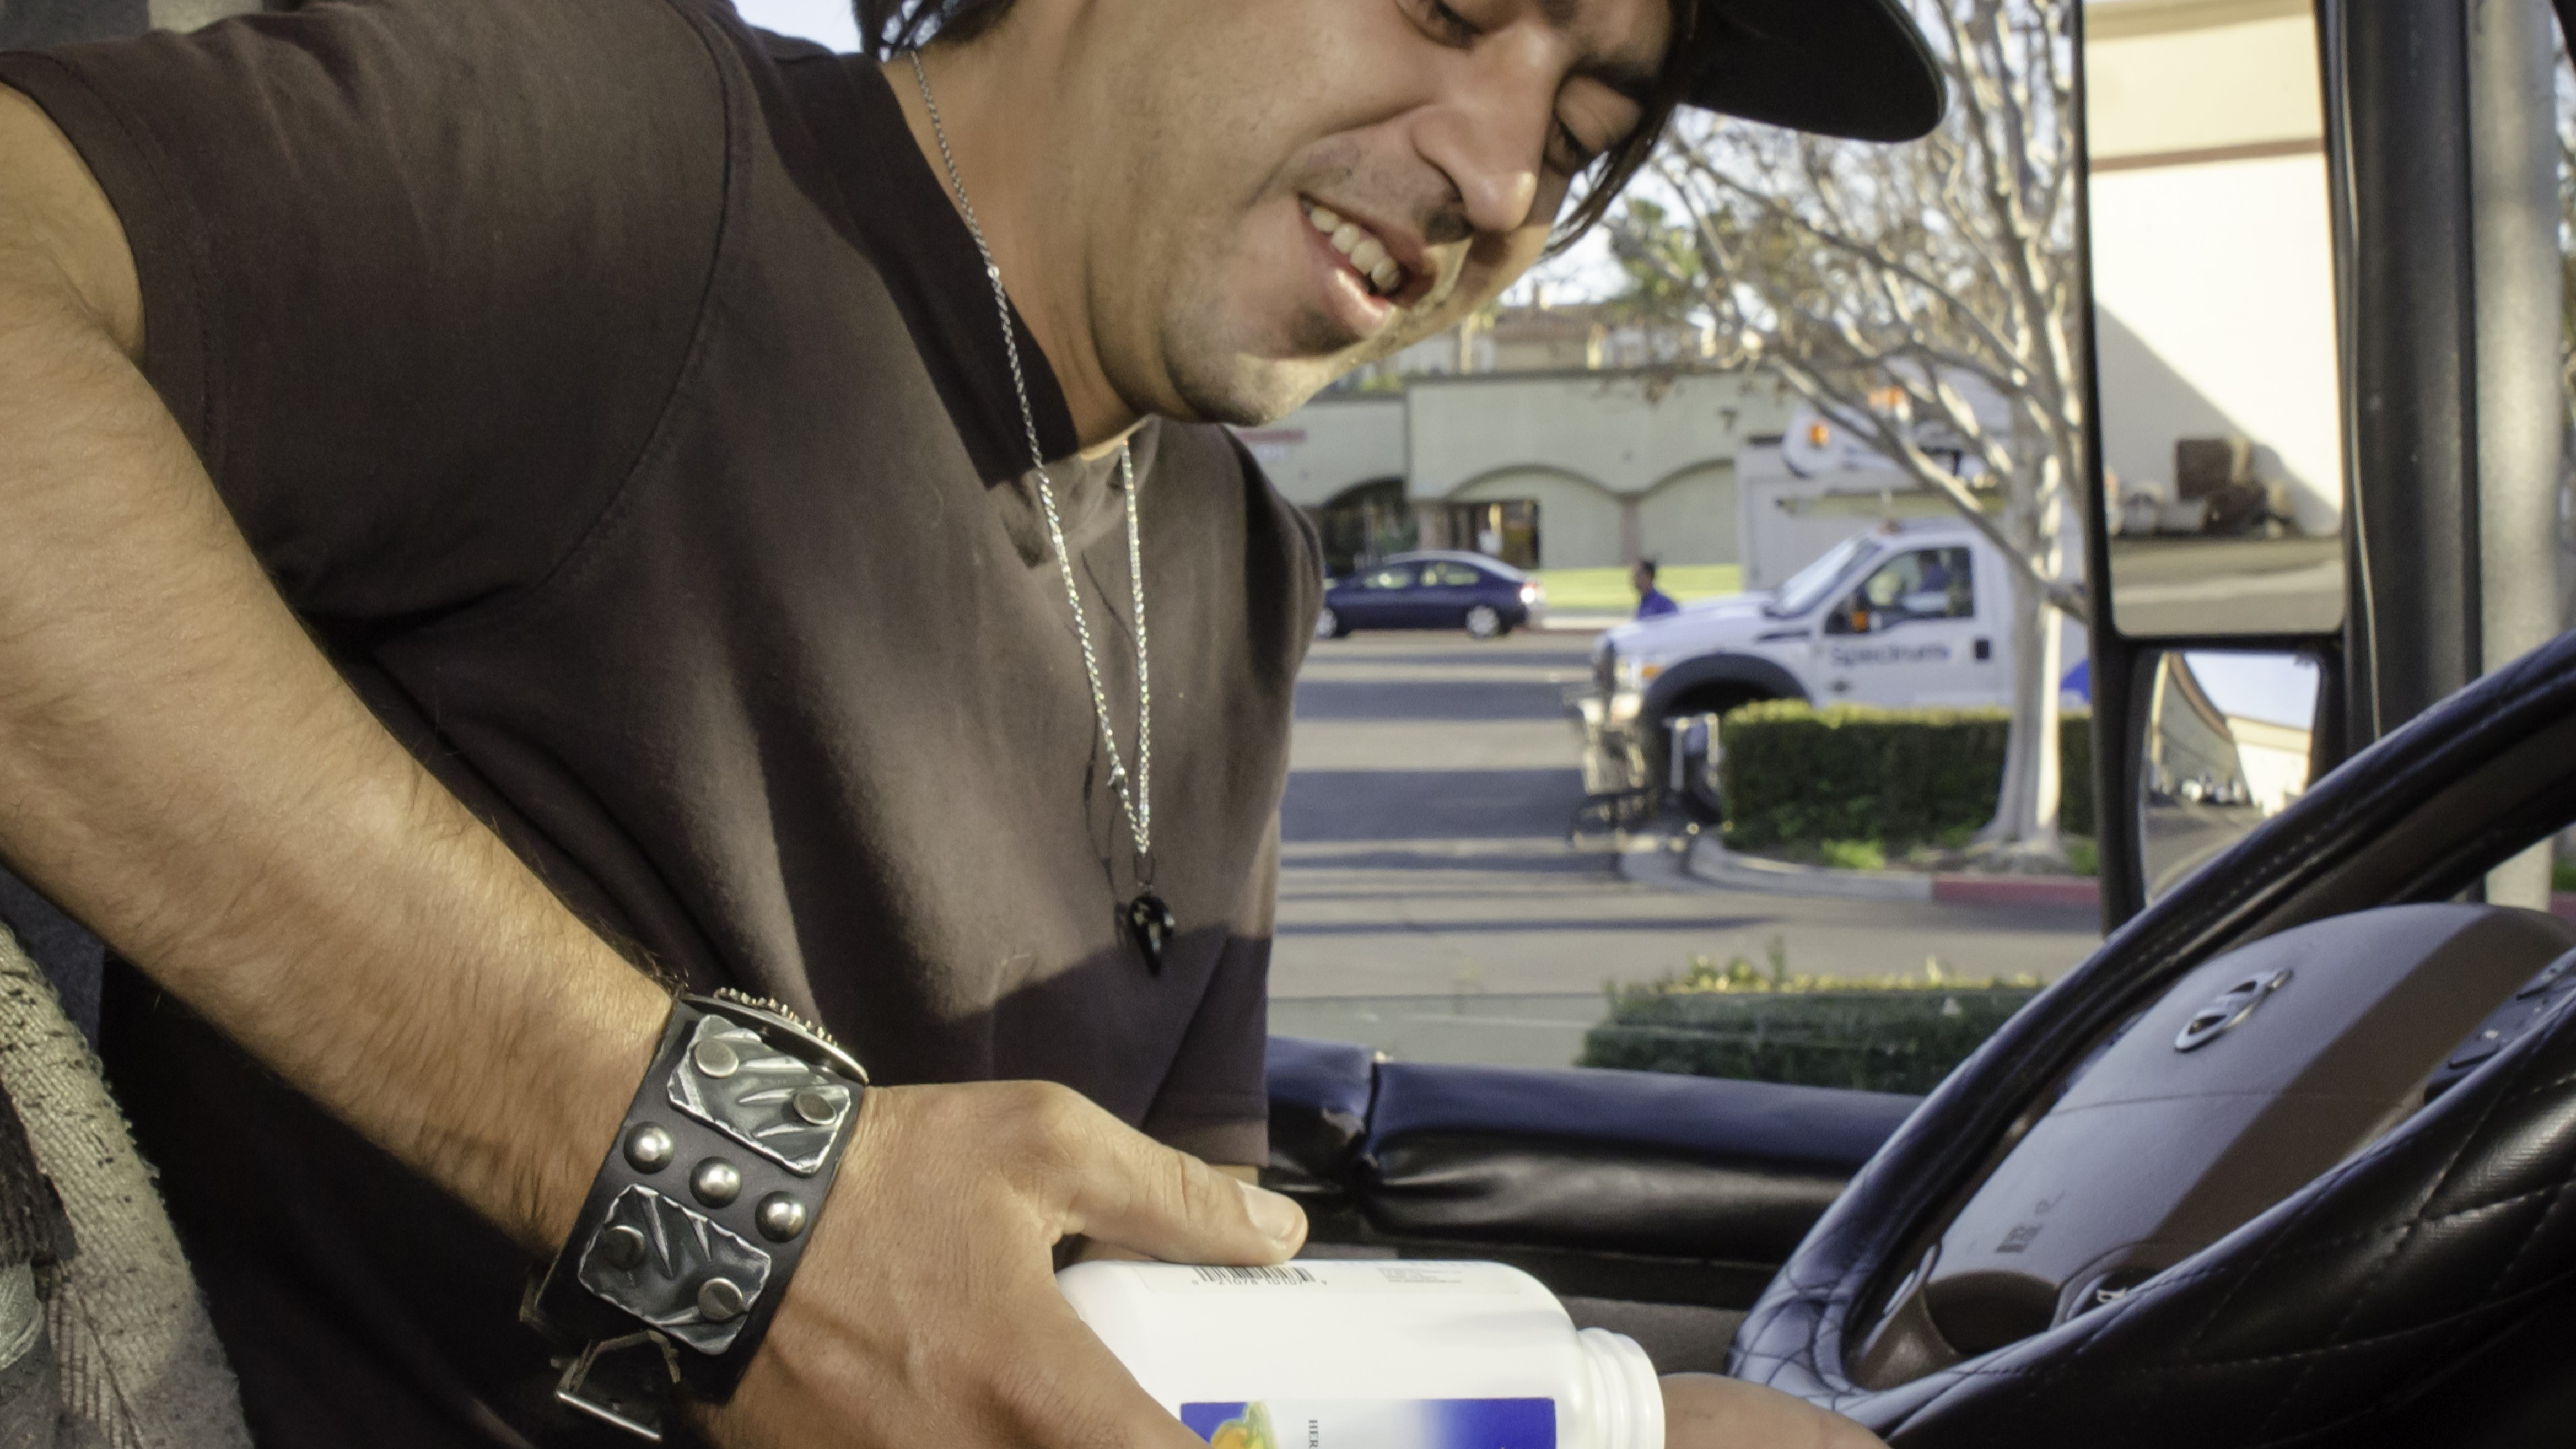 Drugs, younger drivers on trucking research group's agenda